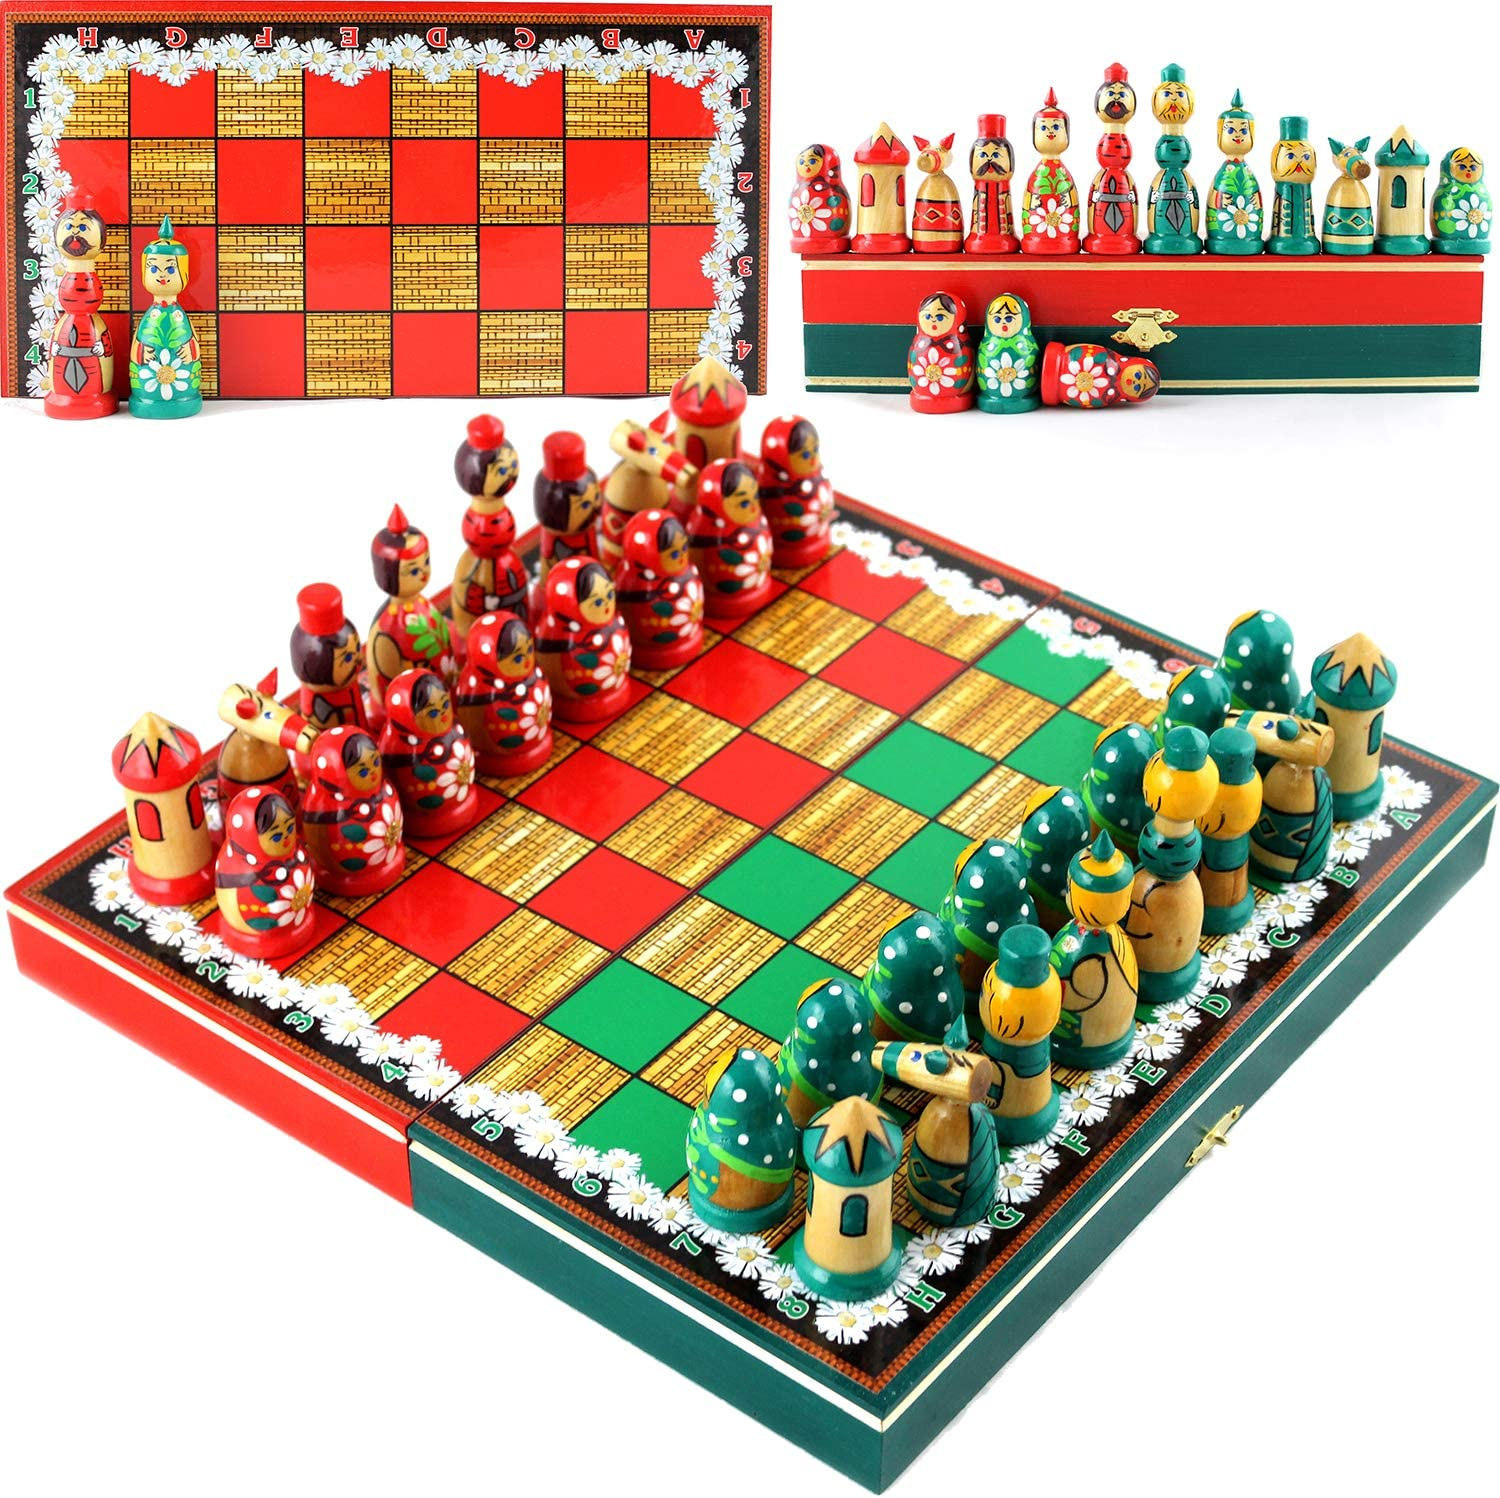 Chess Set Board Game Russian Dolls Set - Themed Chess Russian Folk Art of Russia -Matryoshka Nesting Doll Chess Pieces Wood Decor - Unique Chess Set Souvenirs (Chamomile)